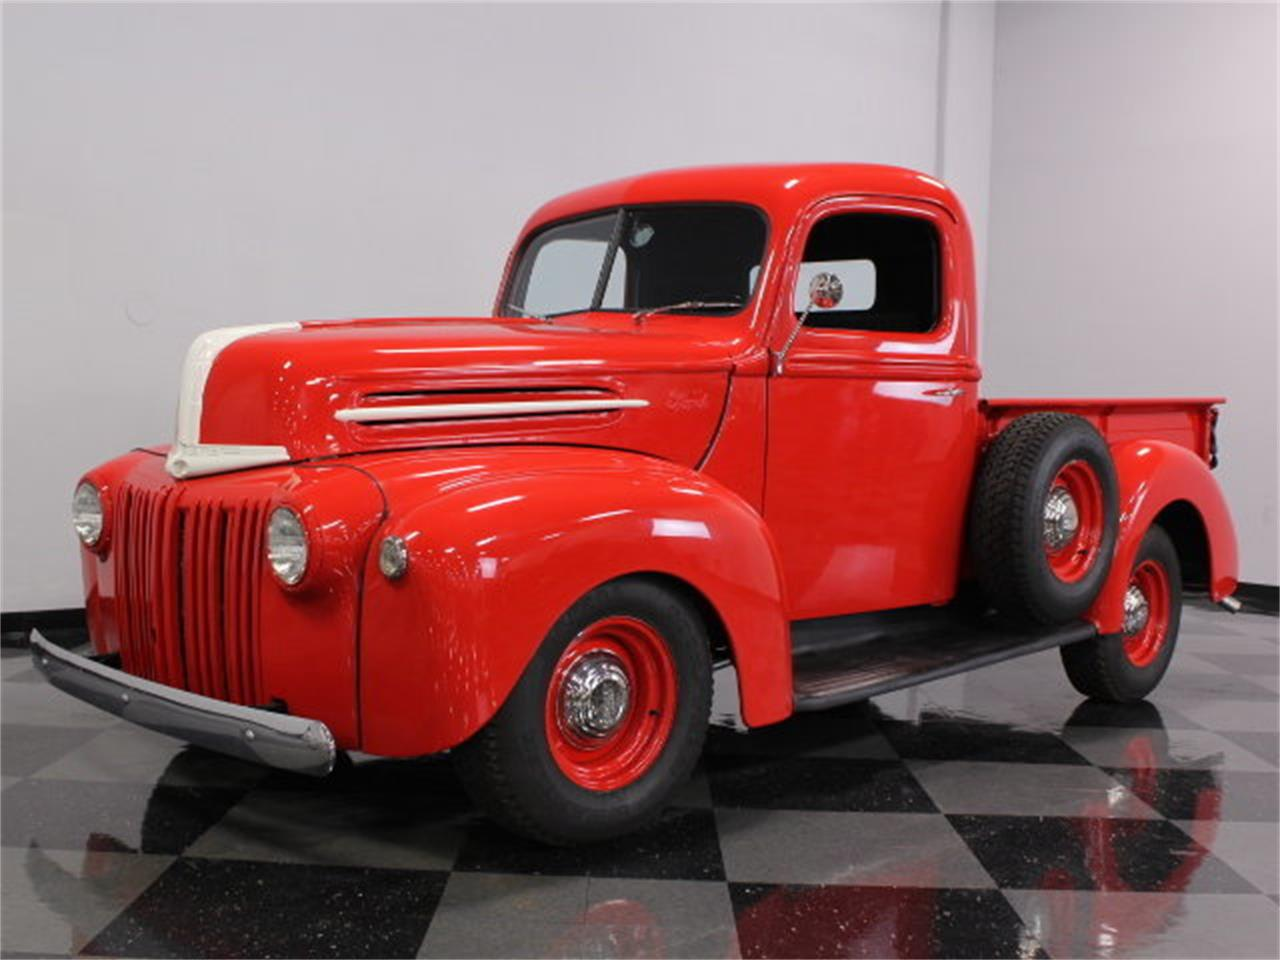 Texas Car Inspection >> 1945 Ford Pickup for Sale | ClassicCars.com | CC-616485